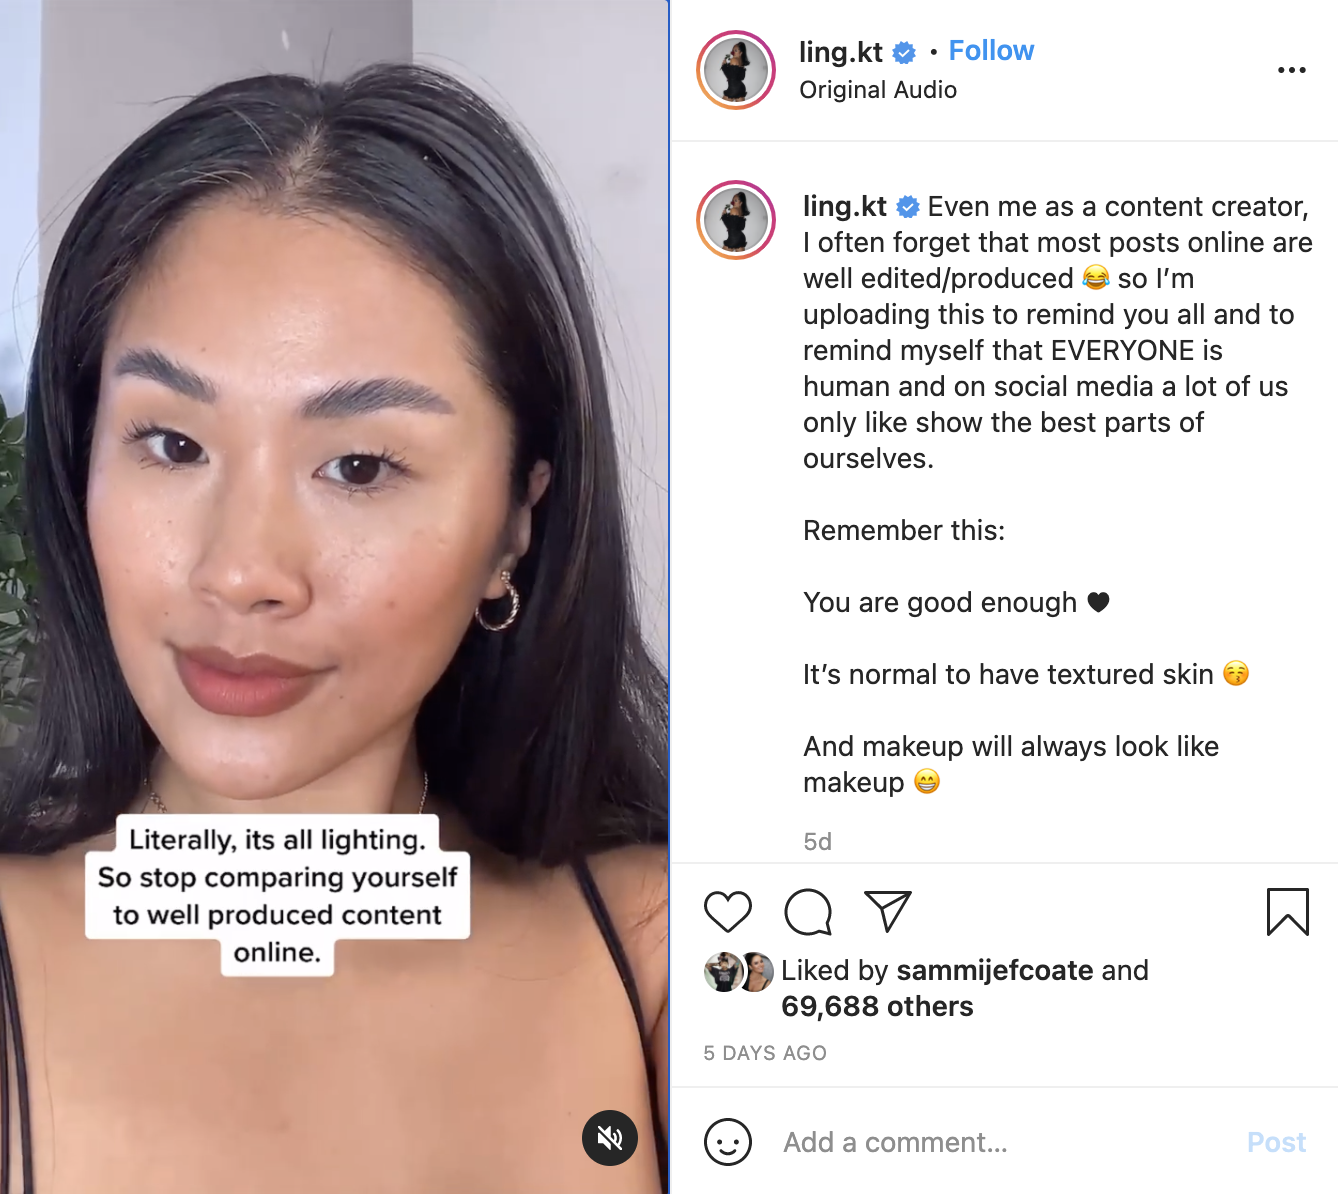 Instagram reel by creator Ling.kt showing how lighting changes how her makeup looks.